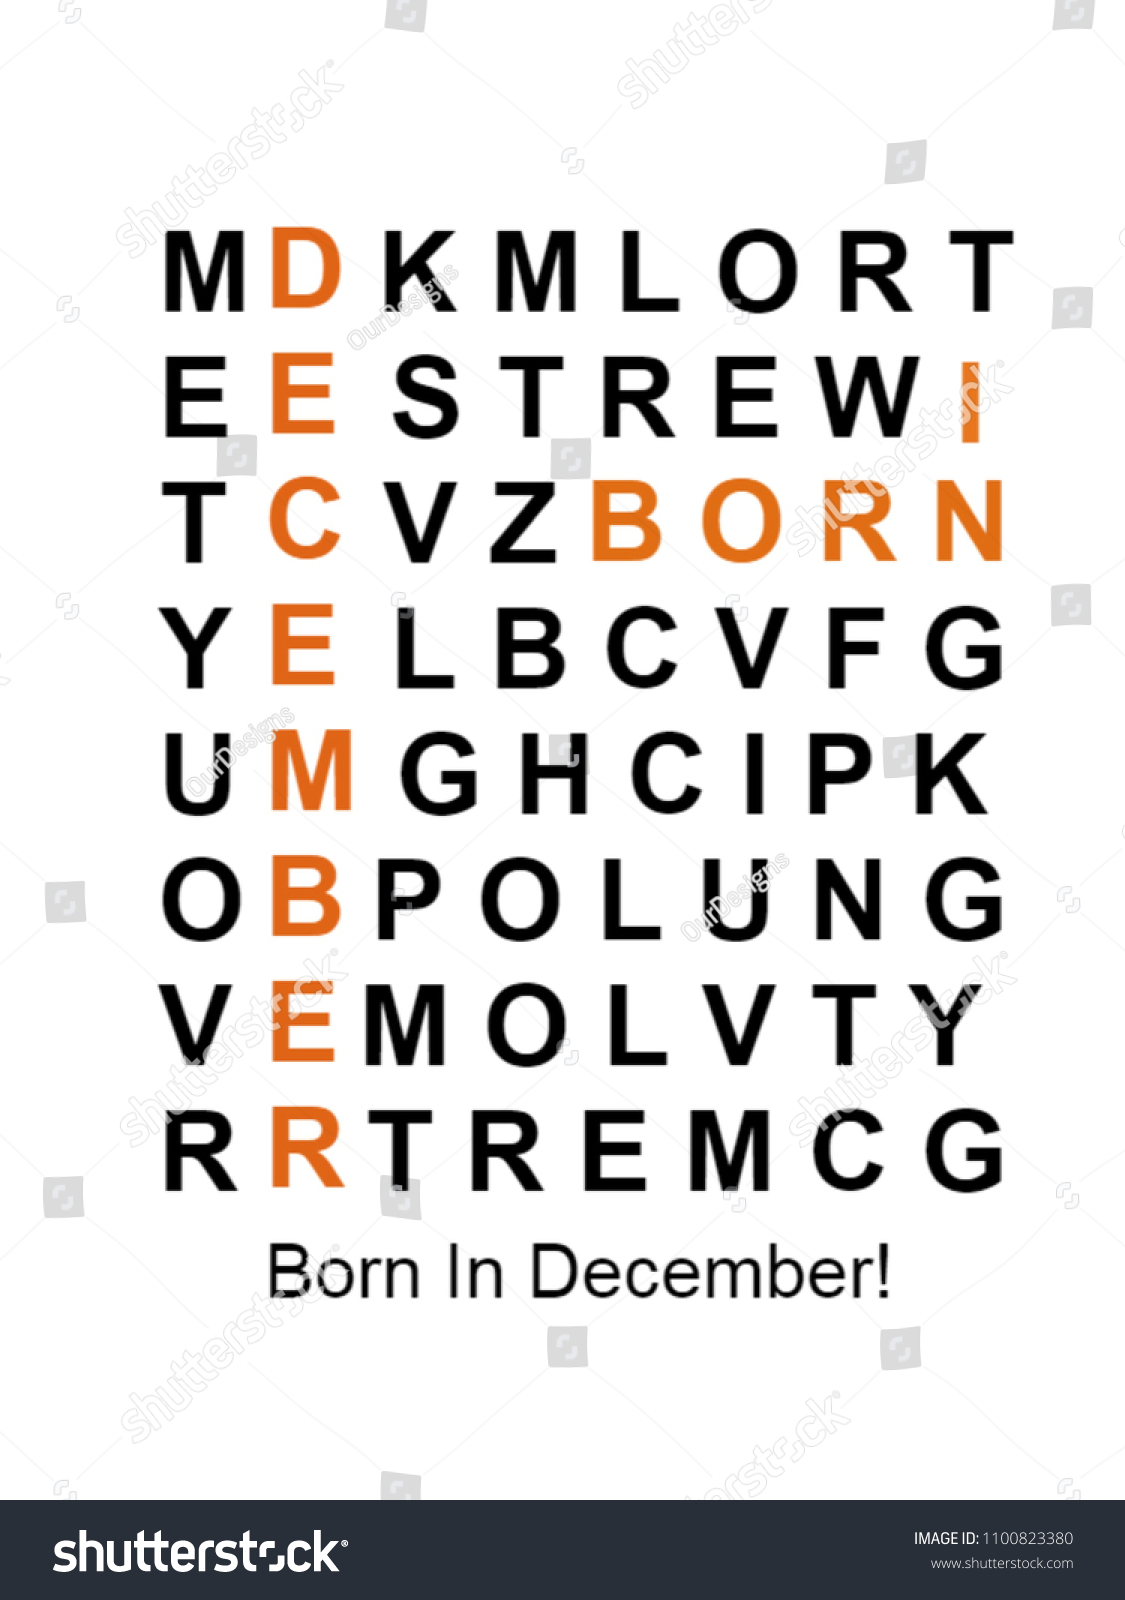 Born In December Puzzle Birthday Gift For Men Women Males Females Son Daughter Mom Dad Sister